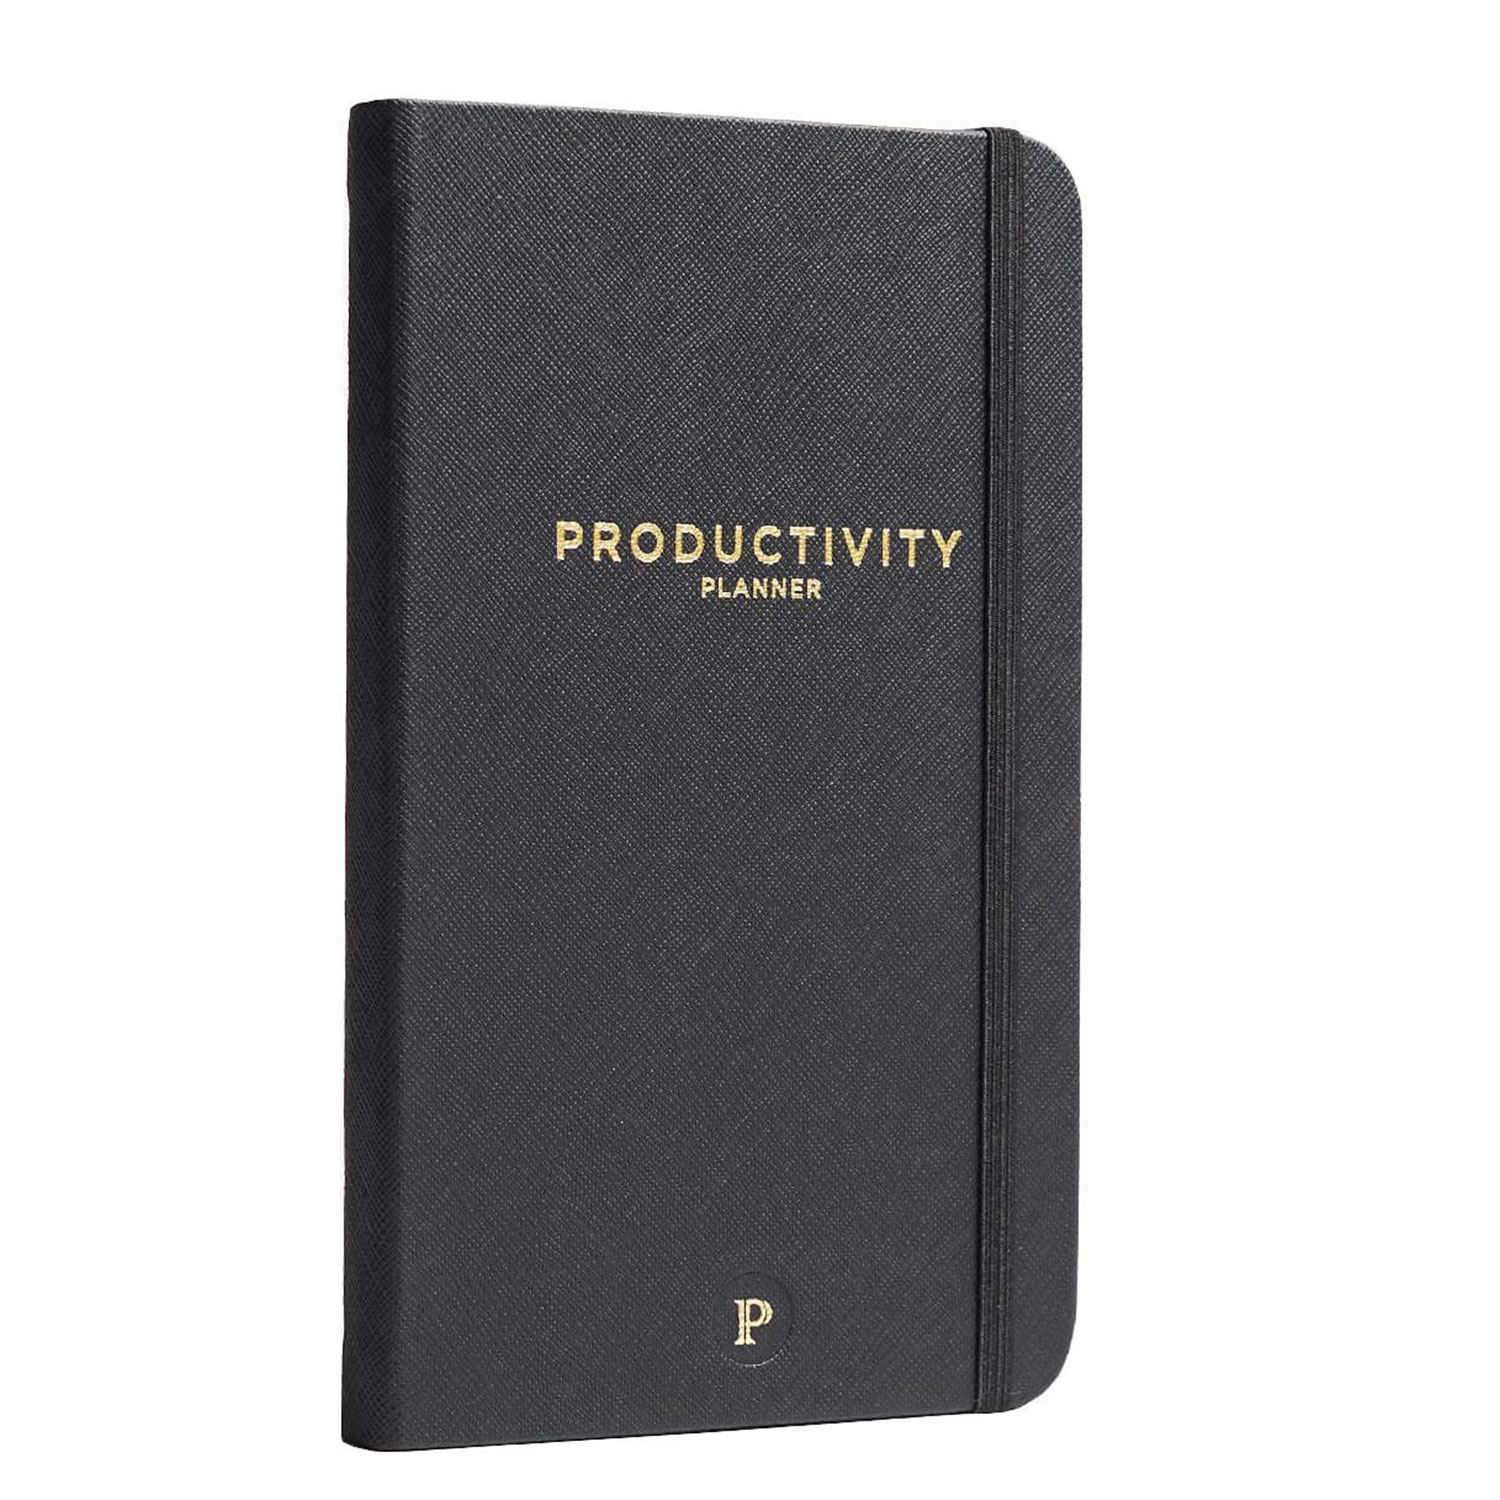 Productivity Planner: Plan Out Your Daily